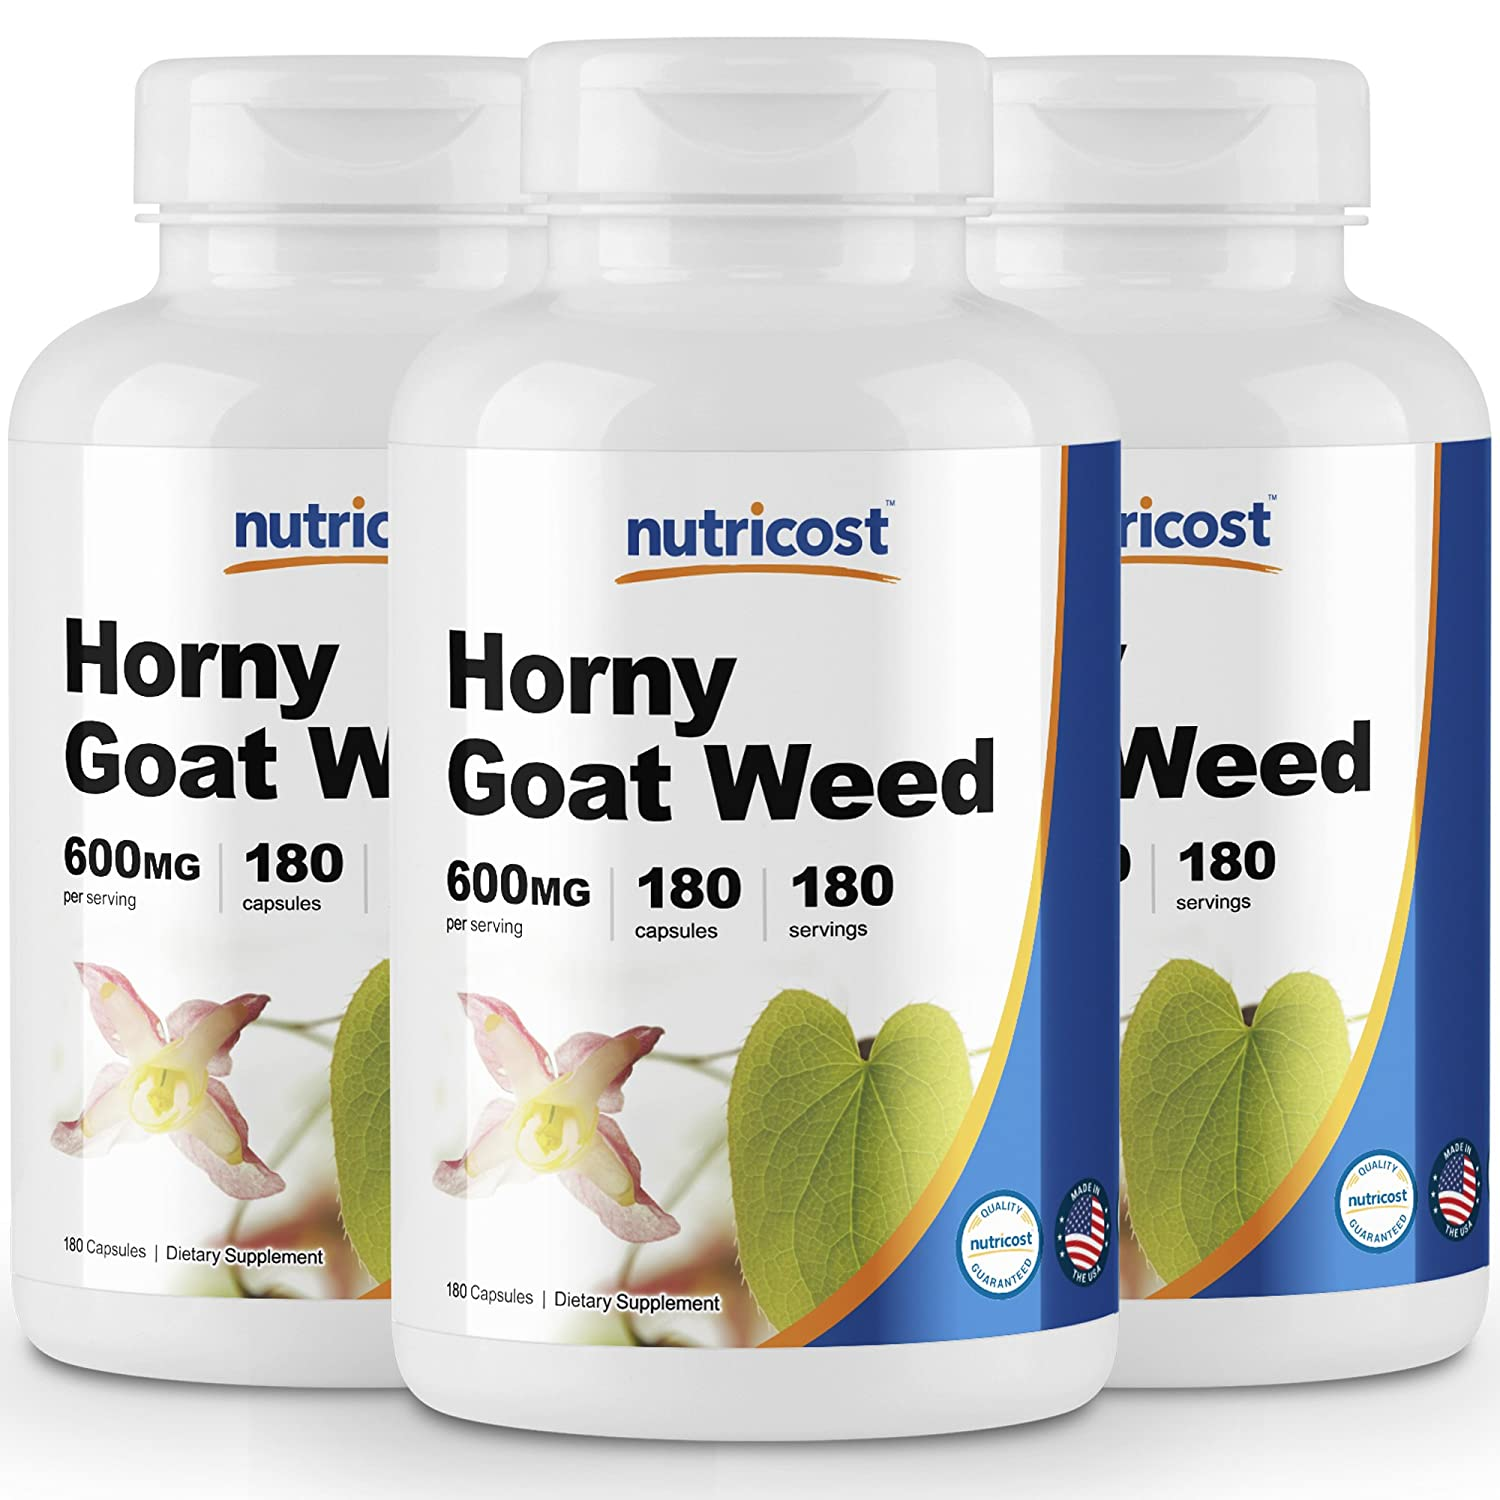 Nutricost Horny Goat Weed Extract Epimedium 3 Bottles – 180 Capsules, 180 Servings Per Bottle, 600mg Per Capsule